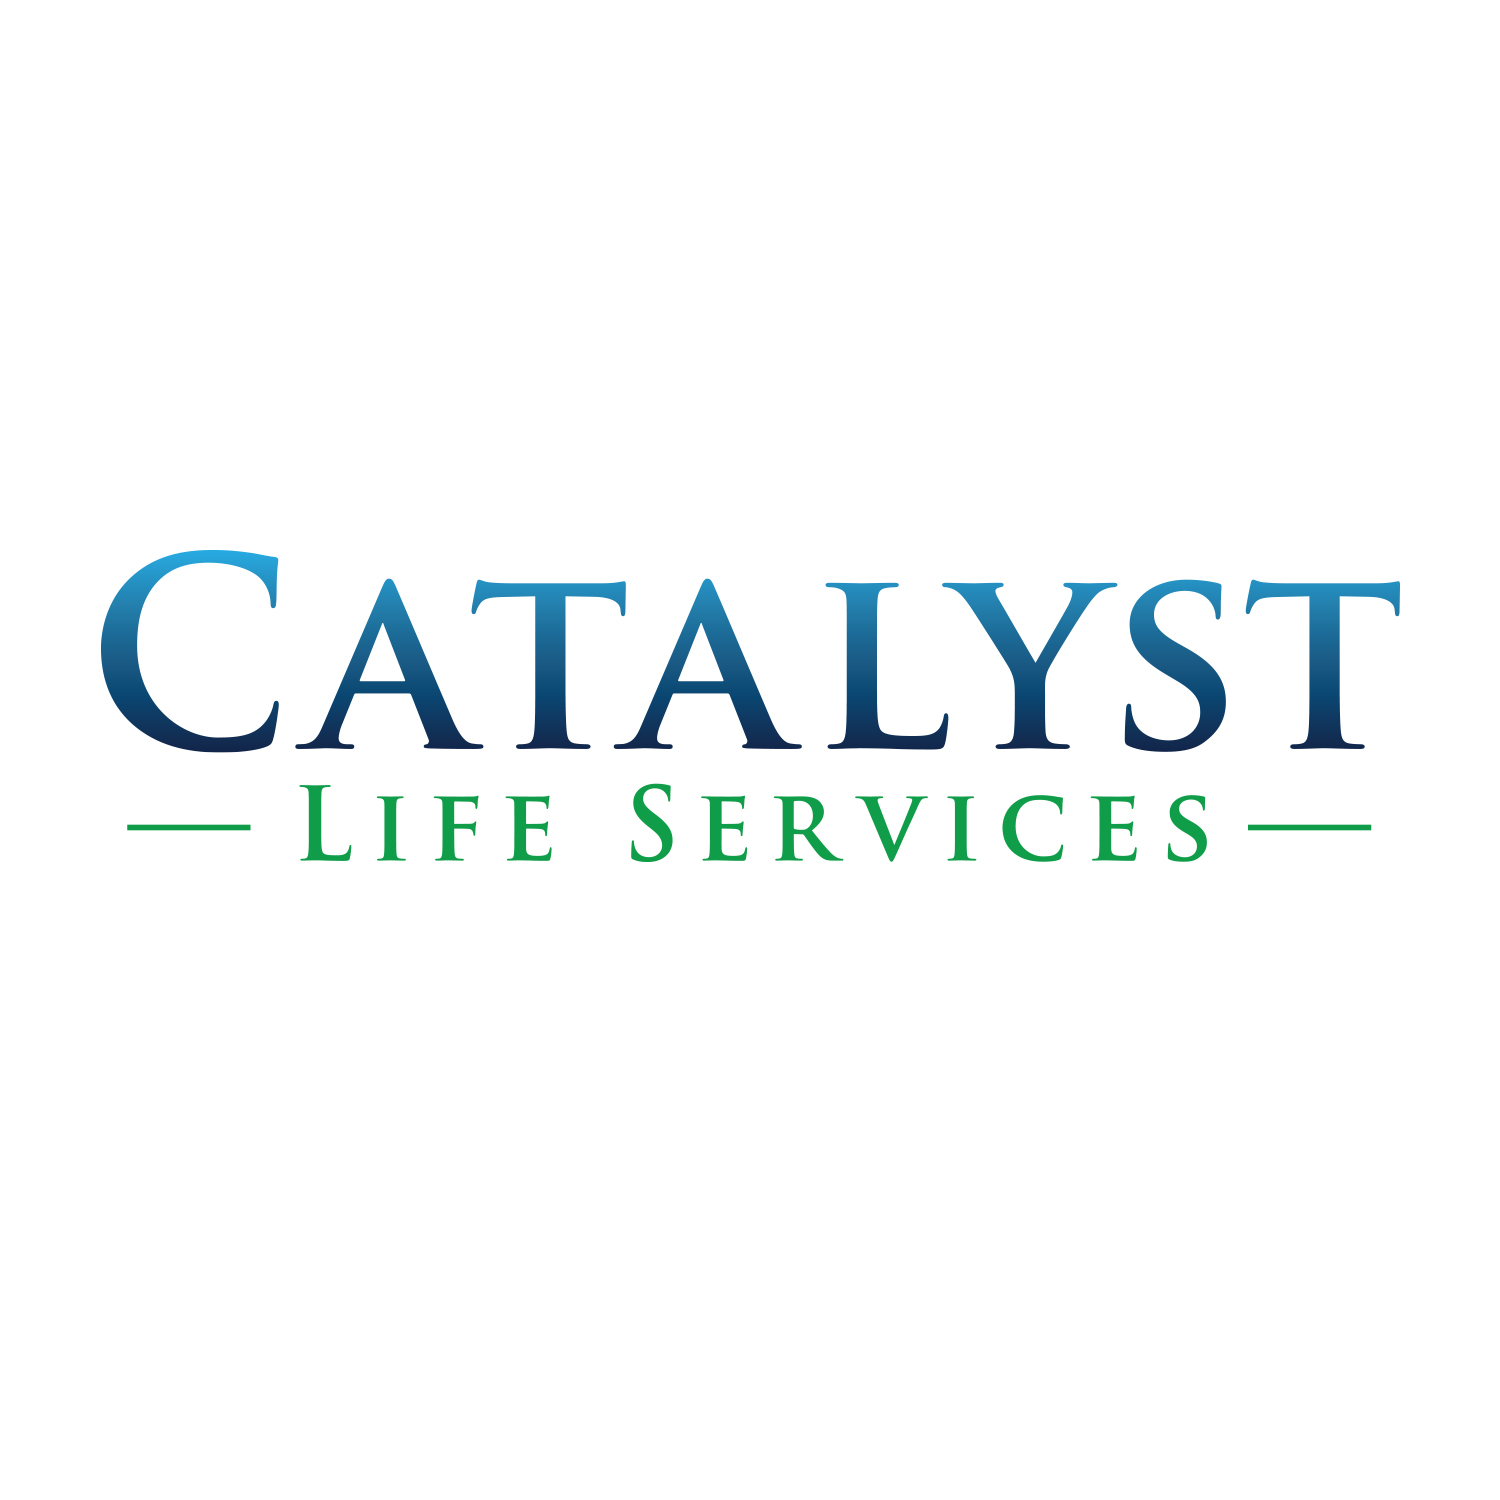 Catalyst is hiring: Counselor - SUD/Mental Health - Full Time